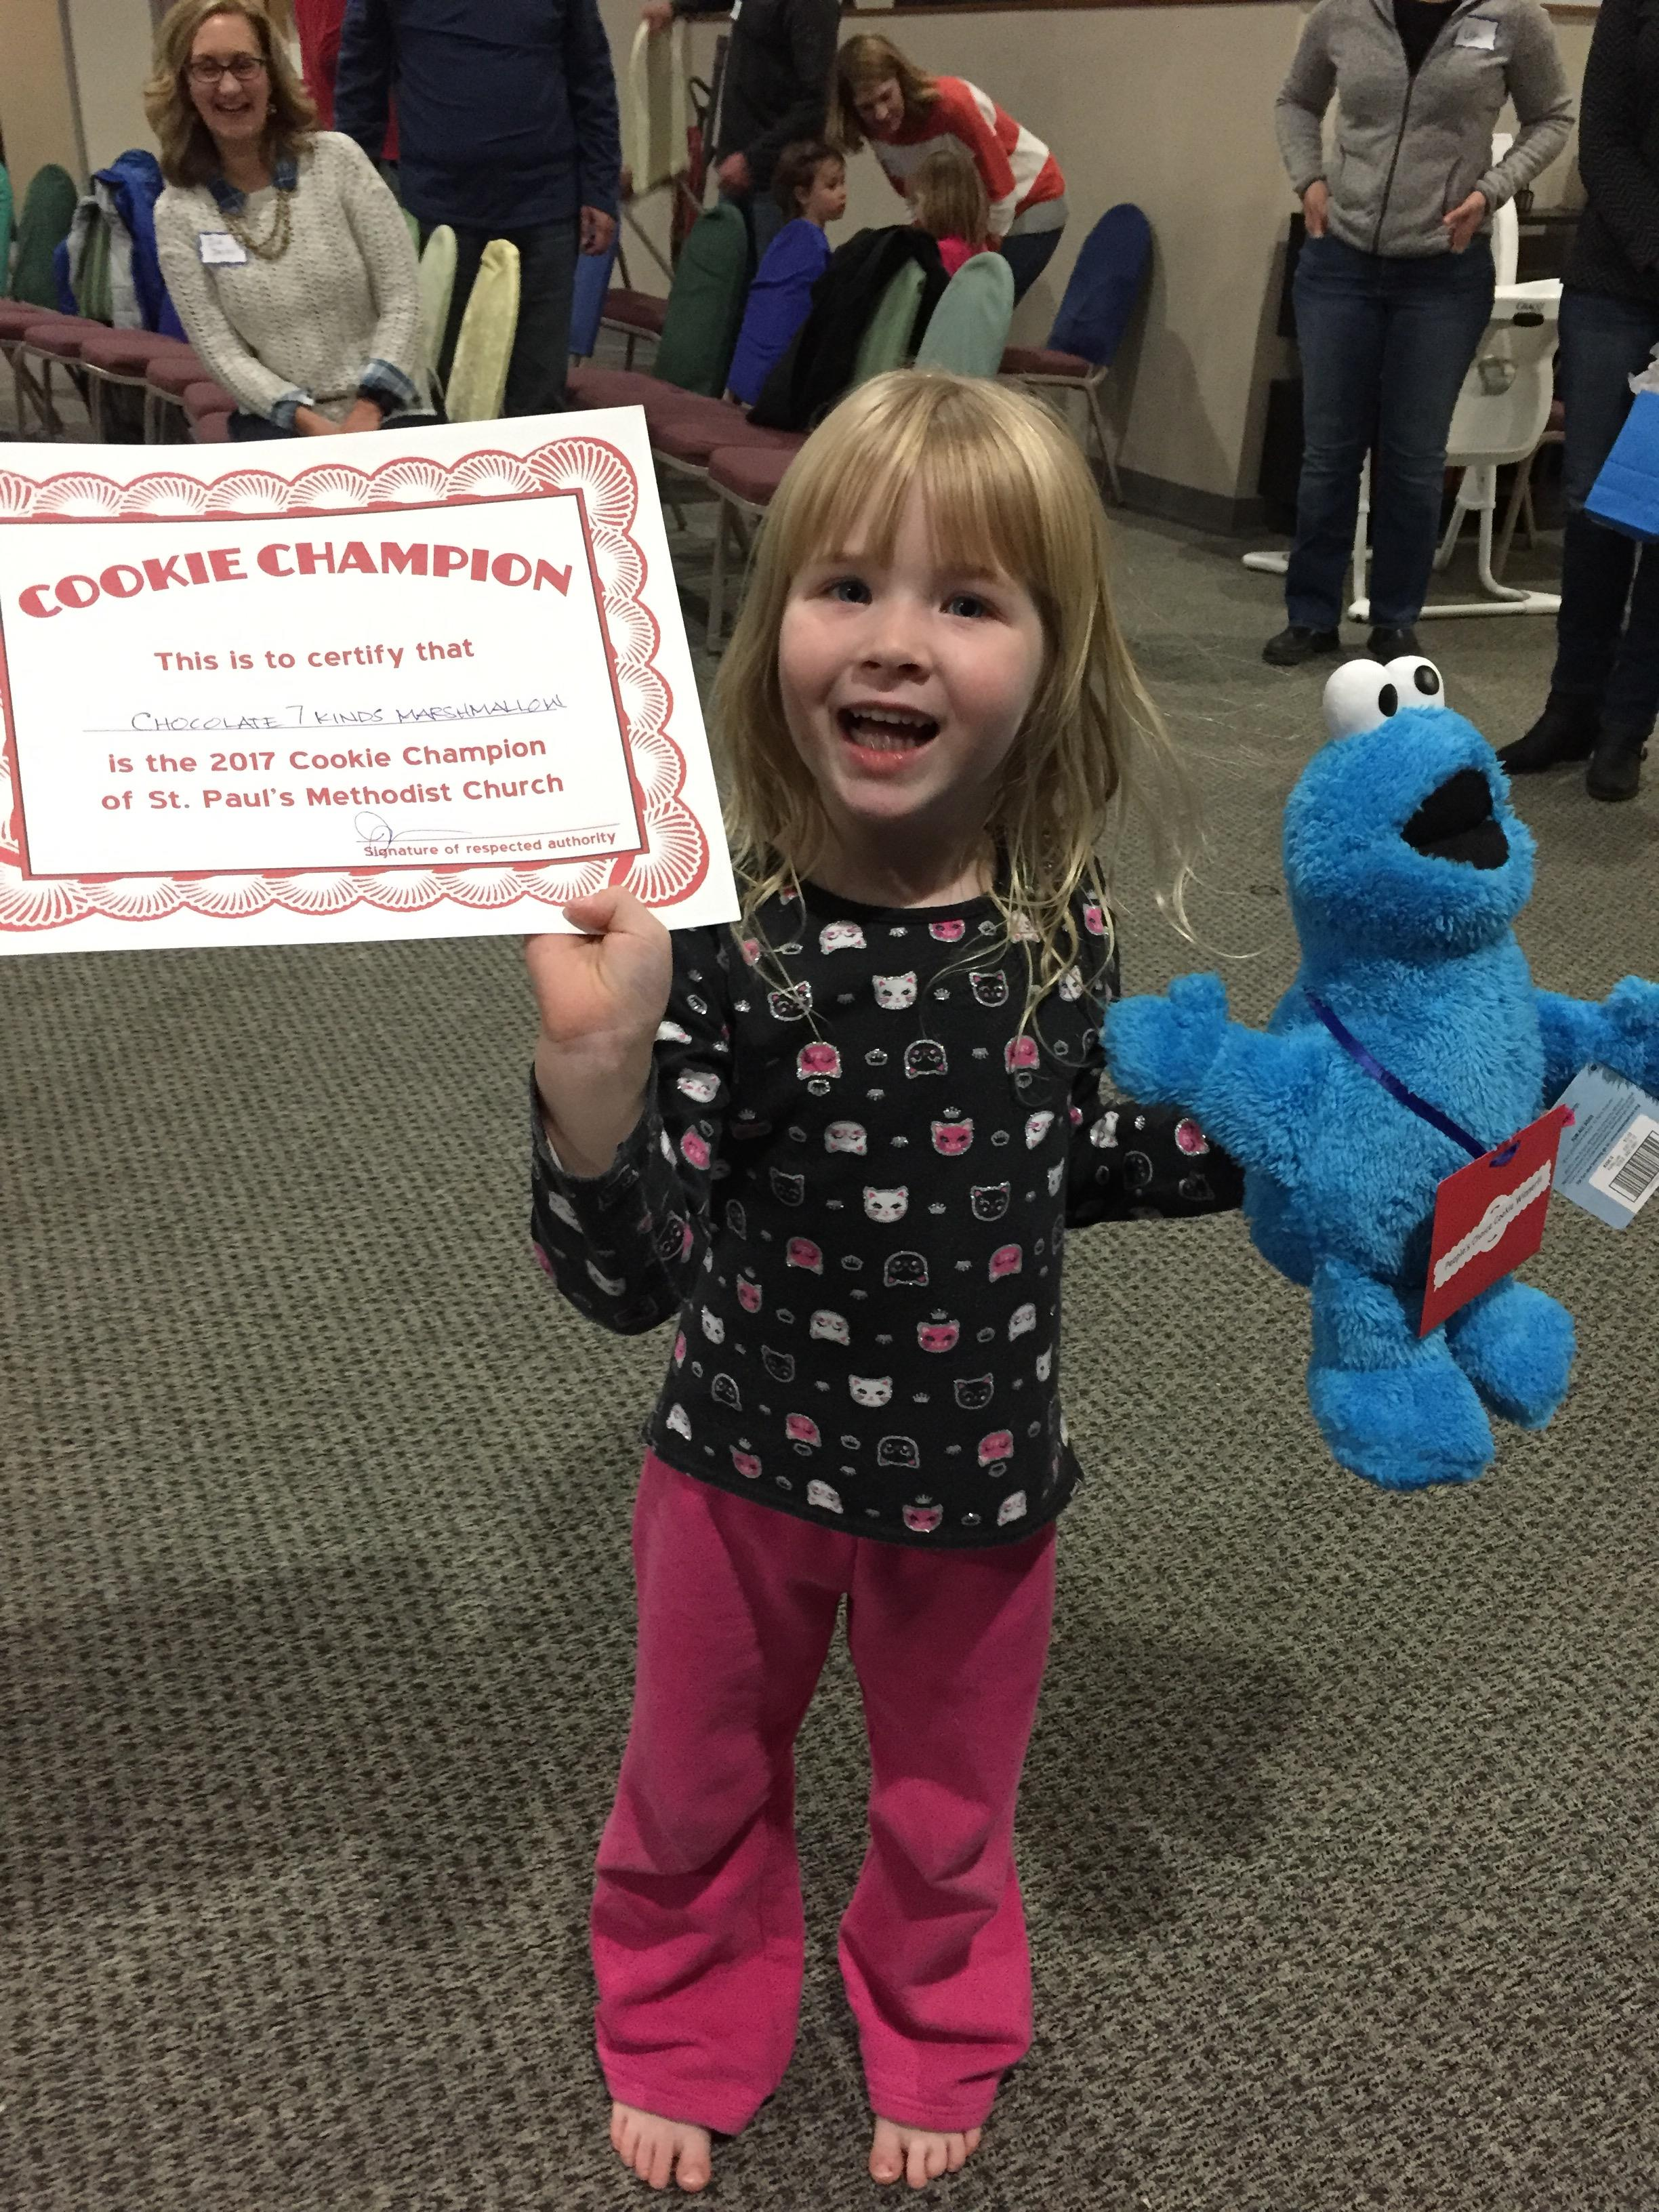 Sarah O'Shea: Kids Cookie Award Winner